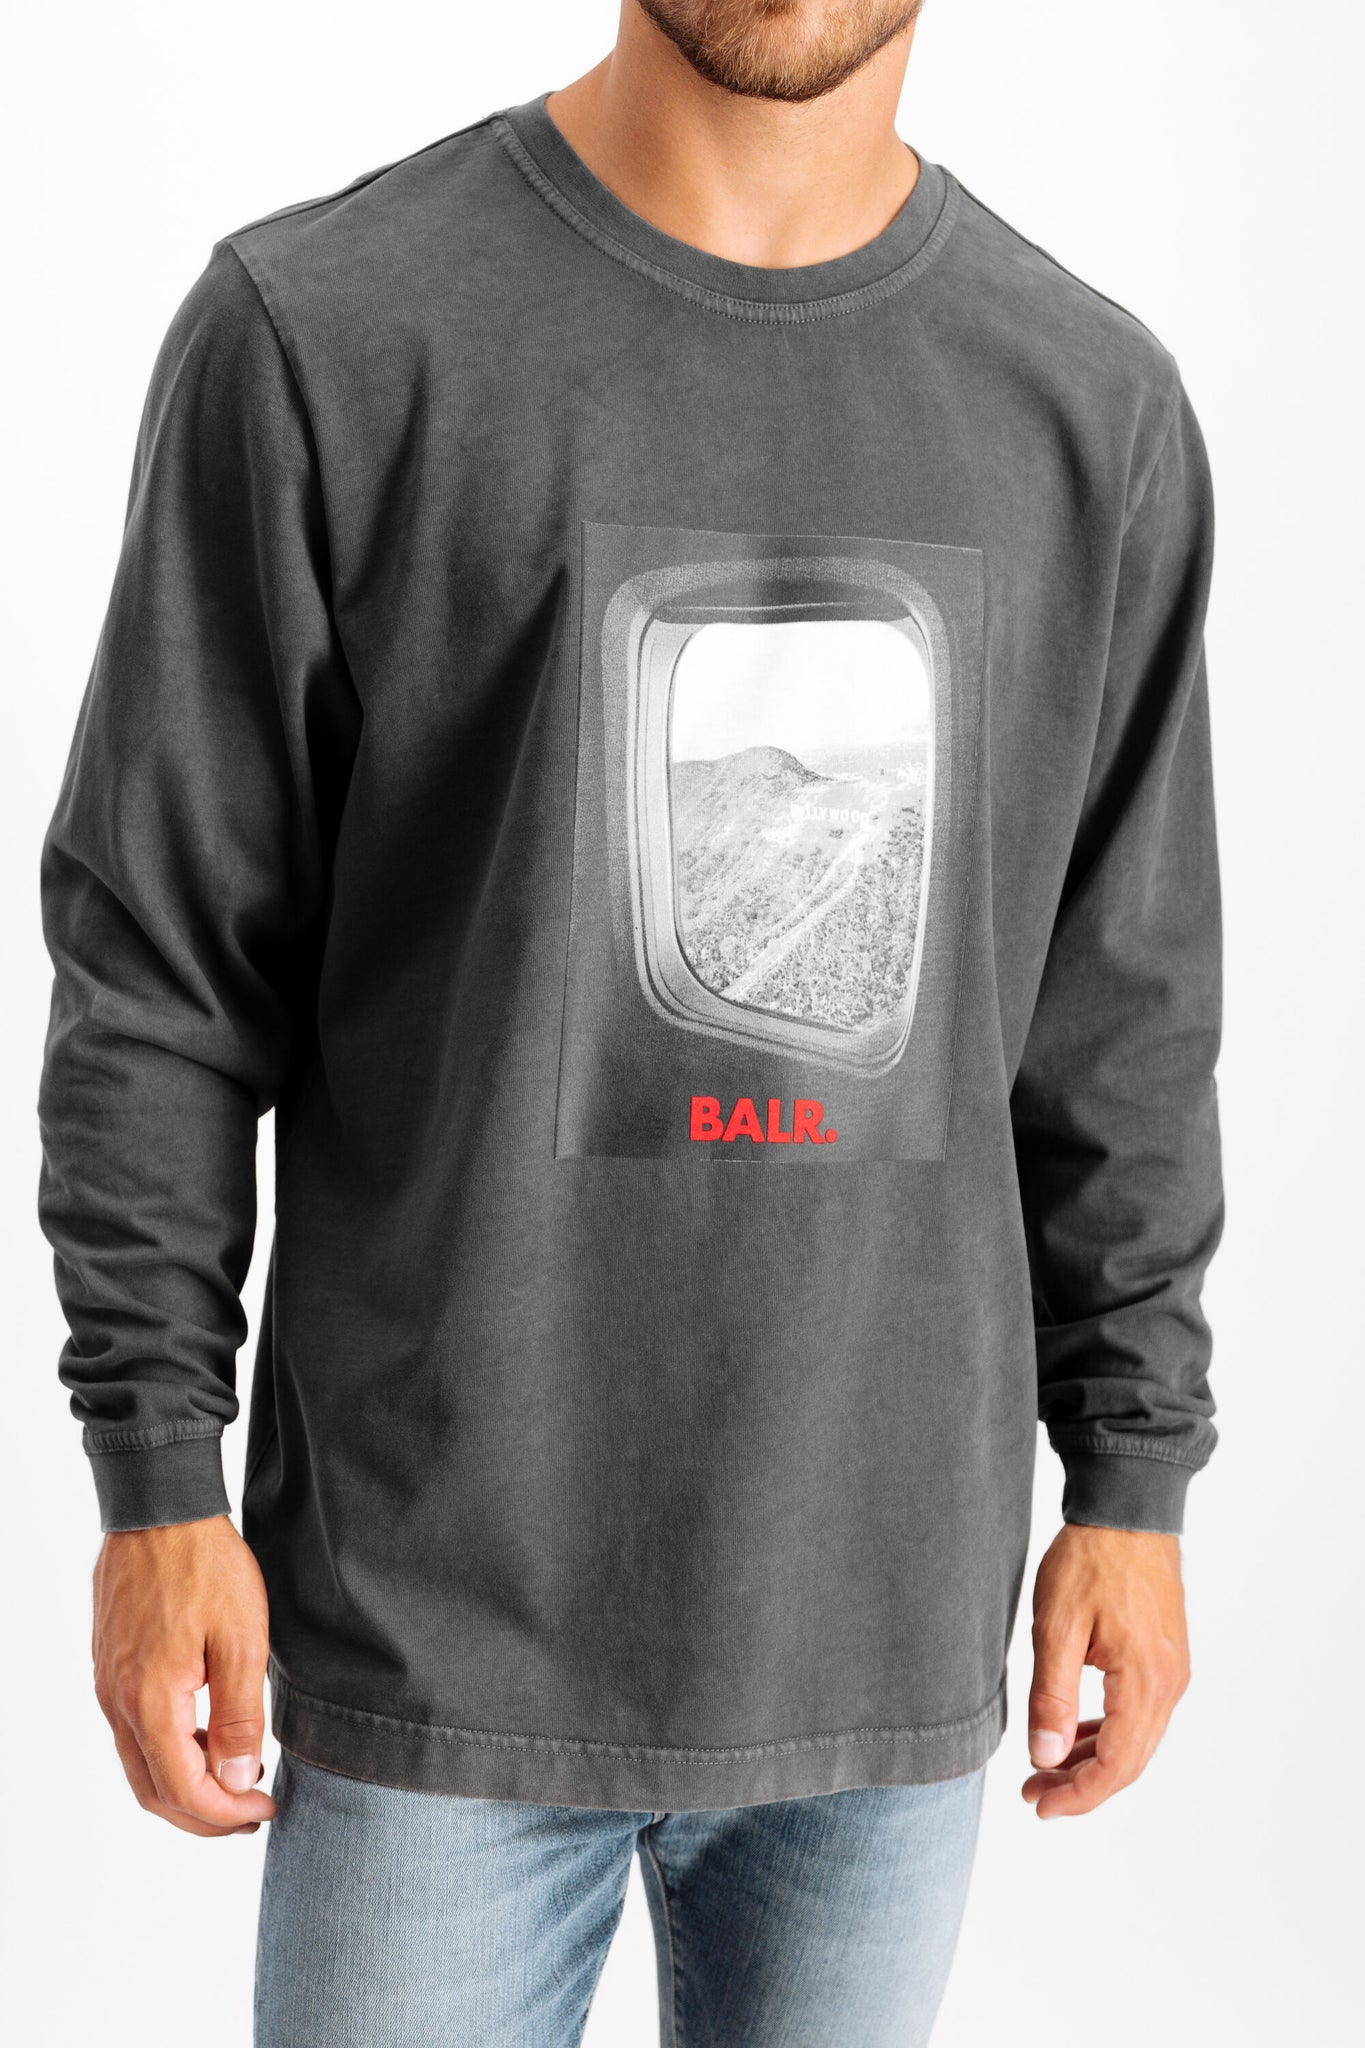 Plane Window Straight T-Shirt L/S Anthracite